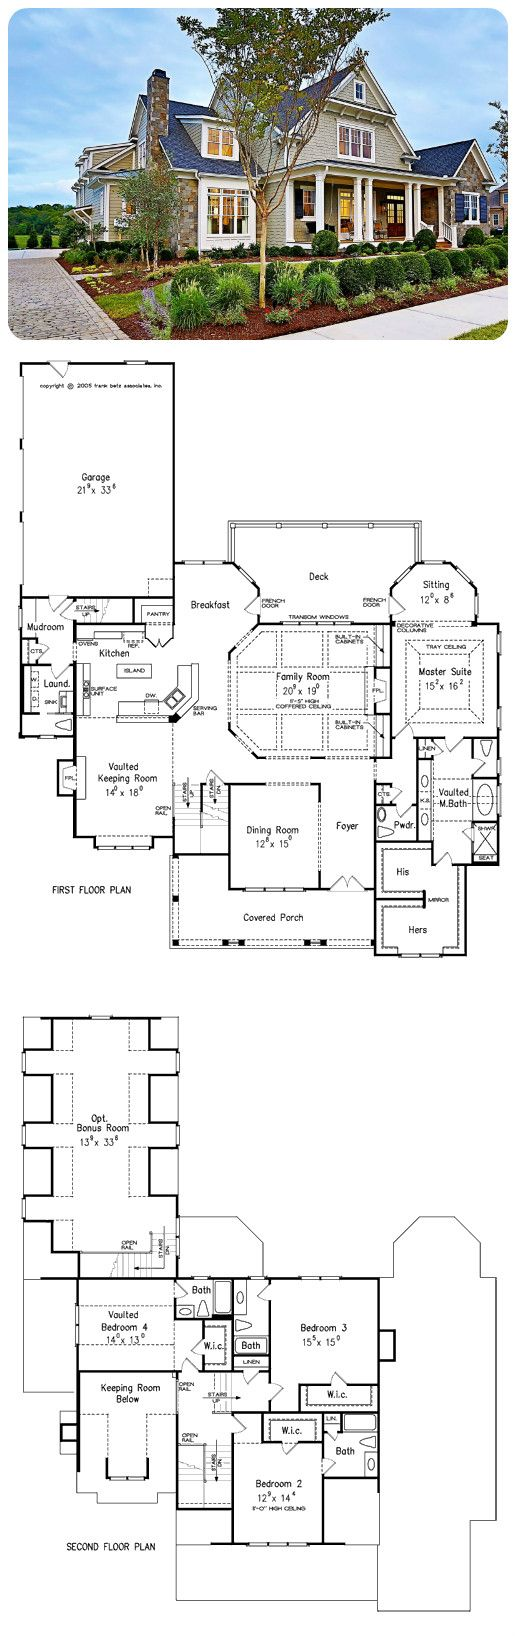 his and hers master bathroom floor plans master suite layout ideas on pinterest download